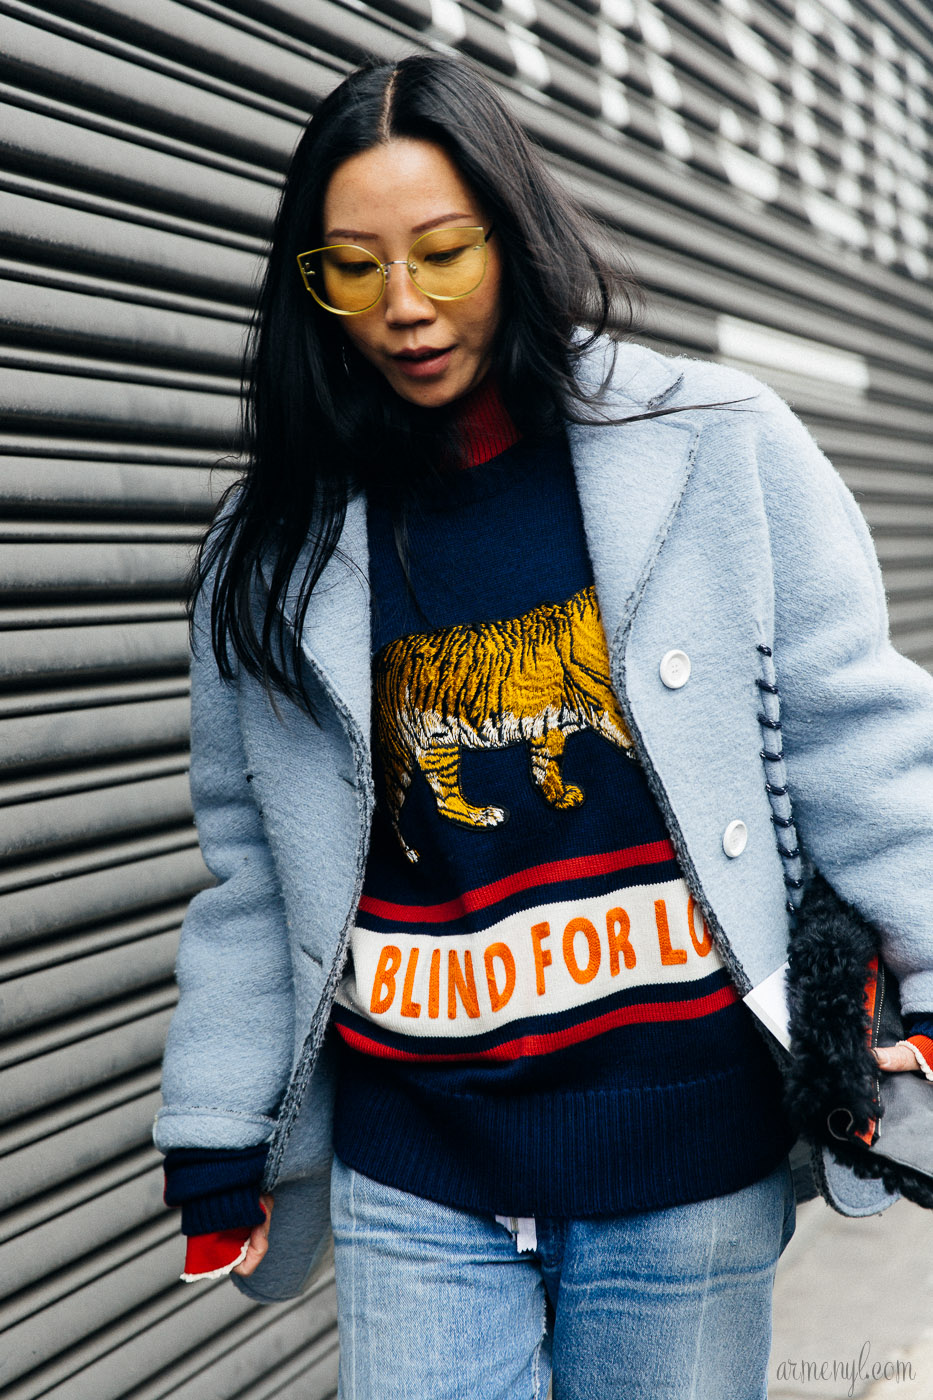 Blind for Love Sweater Street Style photography by Armenyl.com